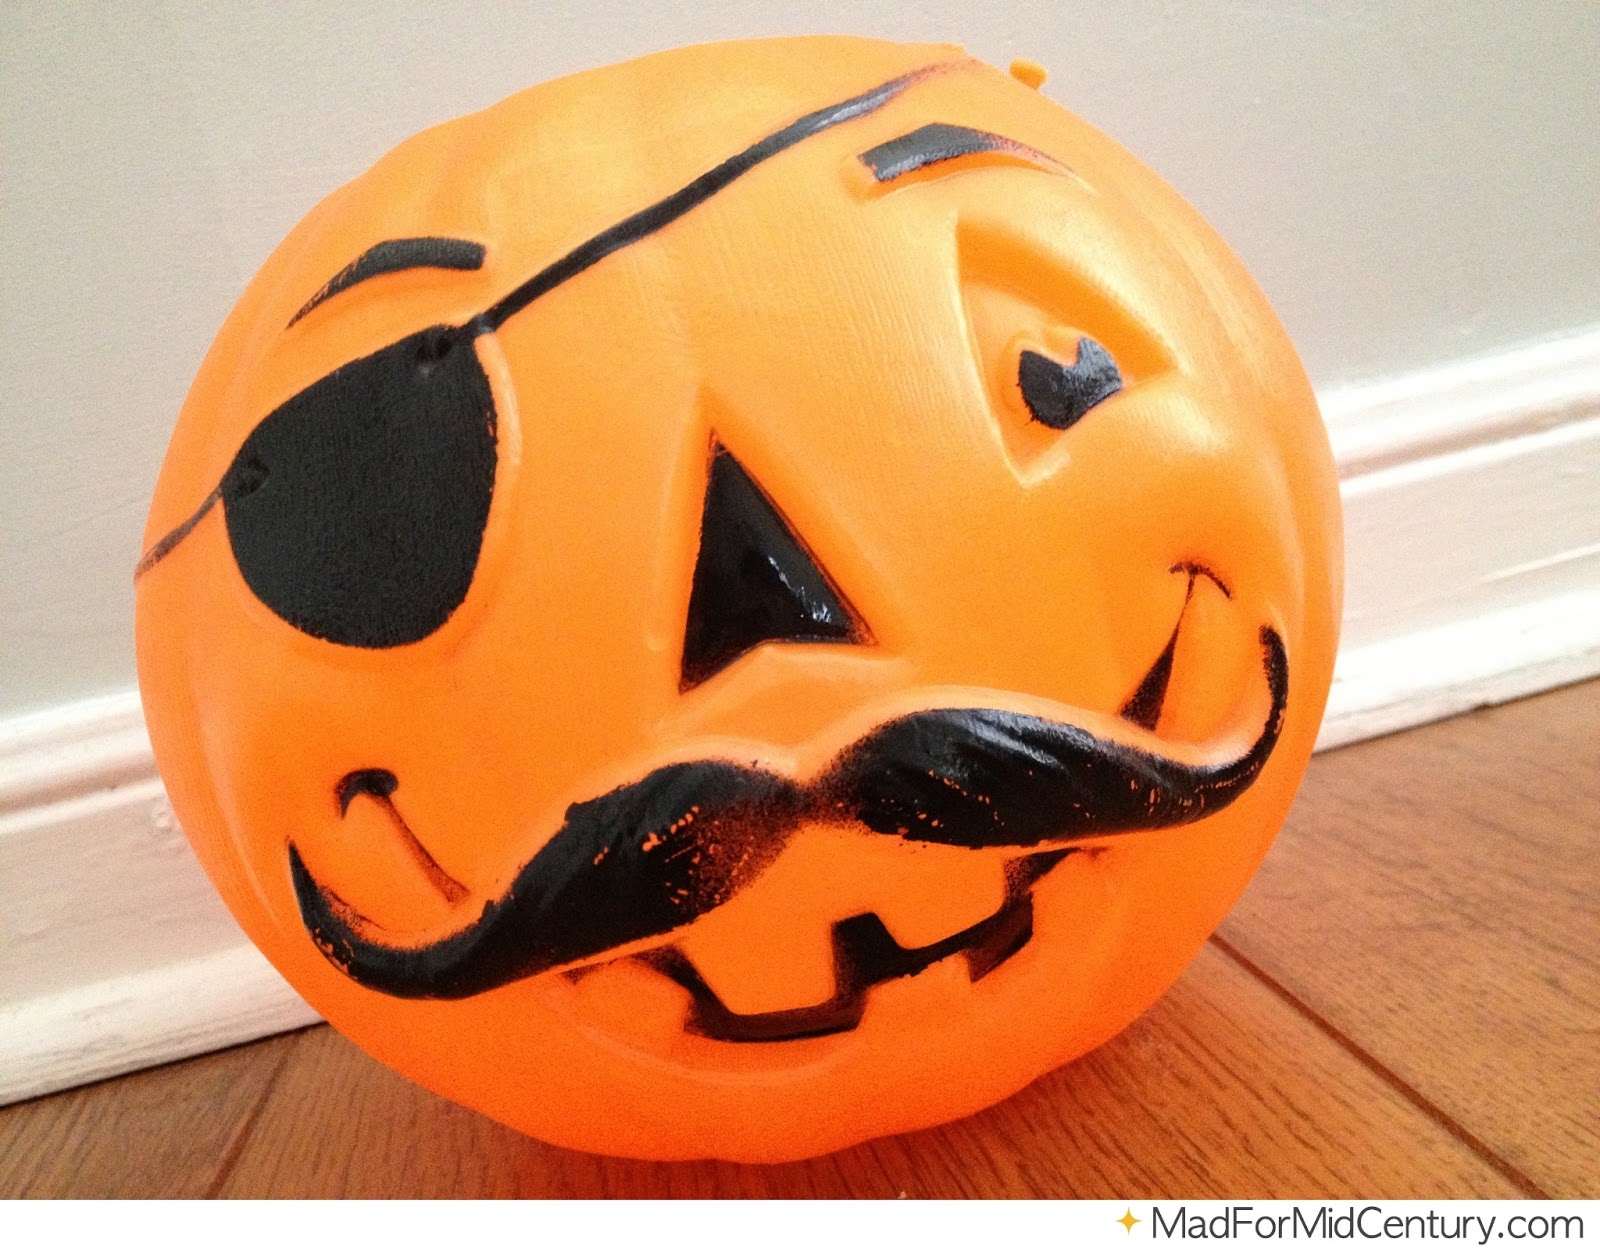 Vintage halloween decorations plastic - It S Your Standard Plastic Pumpkin Candy Bucket Except 100 Times Better Because It Has Both An Eye Patch And A Handlebar Mustache It S Missing The Handle